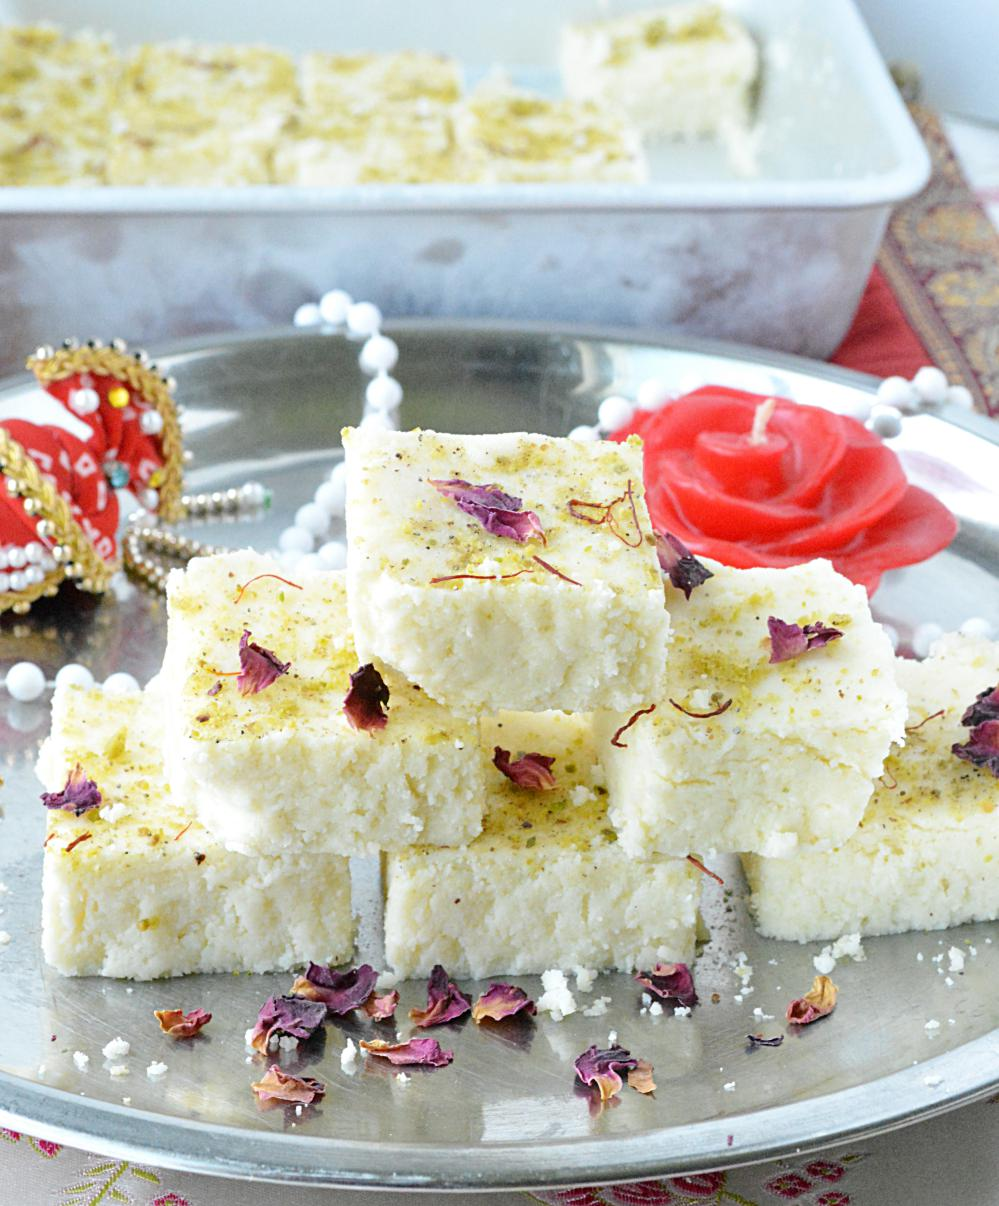 paneer-burfi-recipe-7